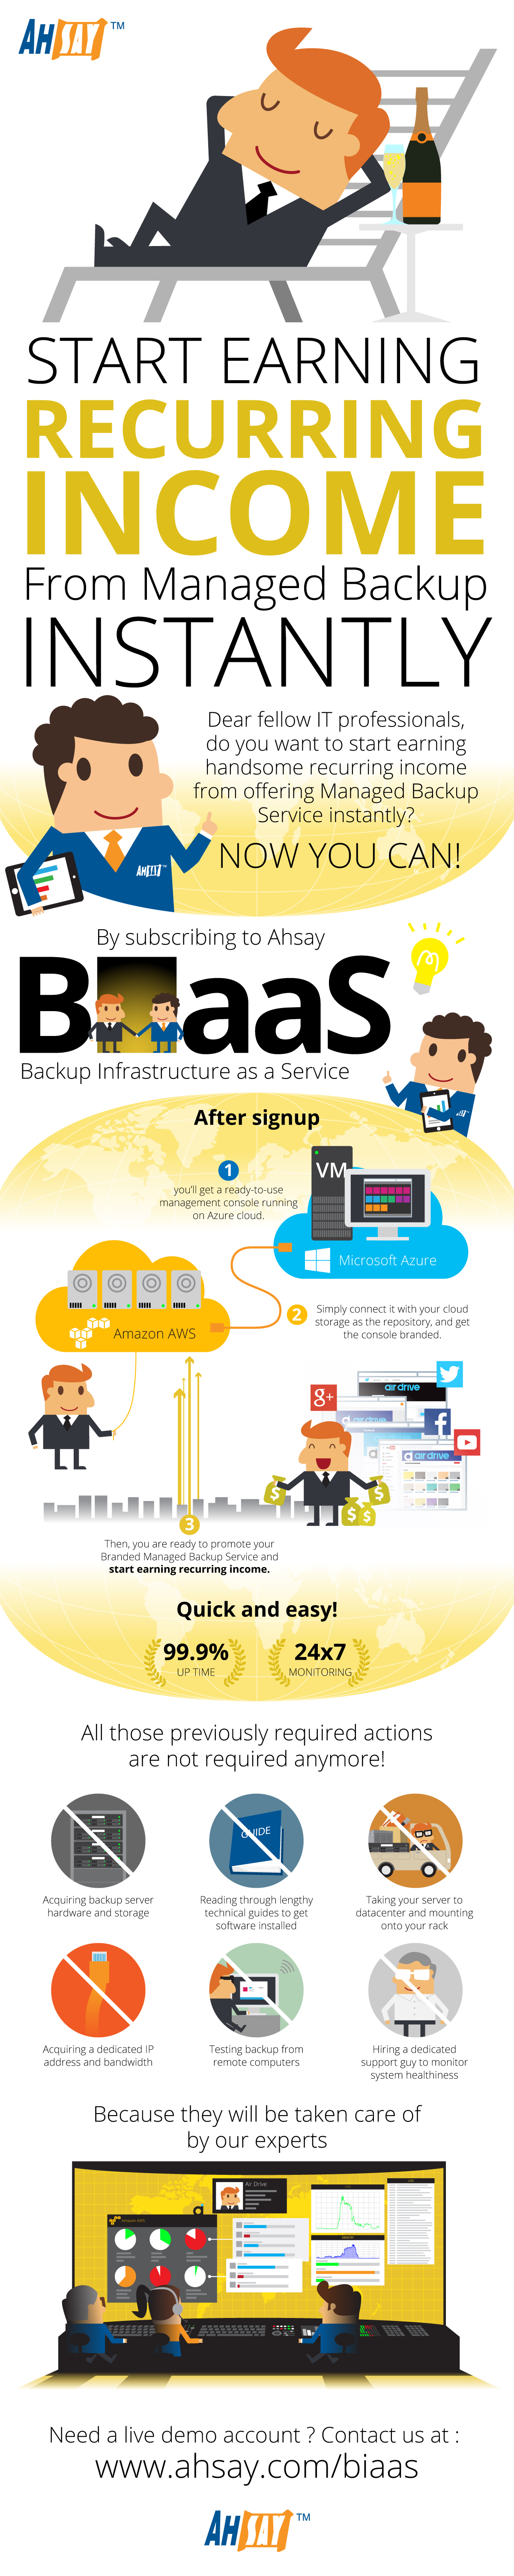 Earn recurring income from Managed Backup Service with the hassels of managing hardware, system, bandwidth and other infrastructure